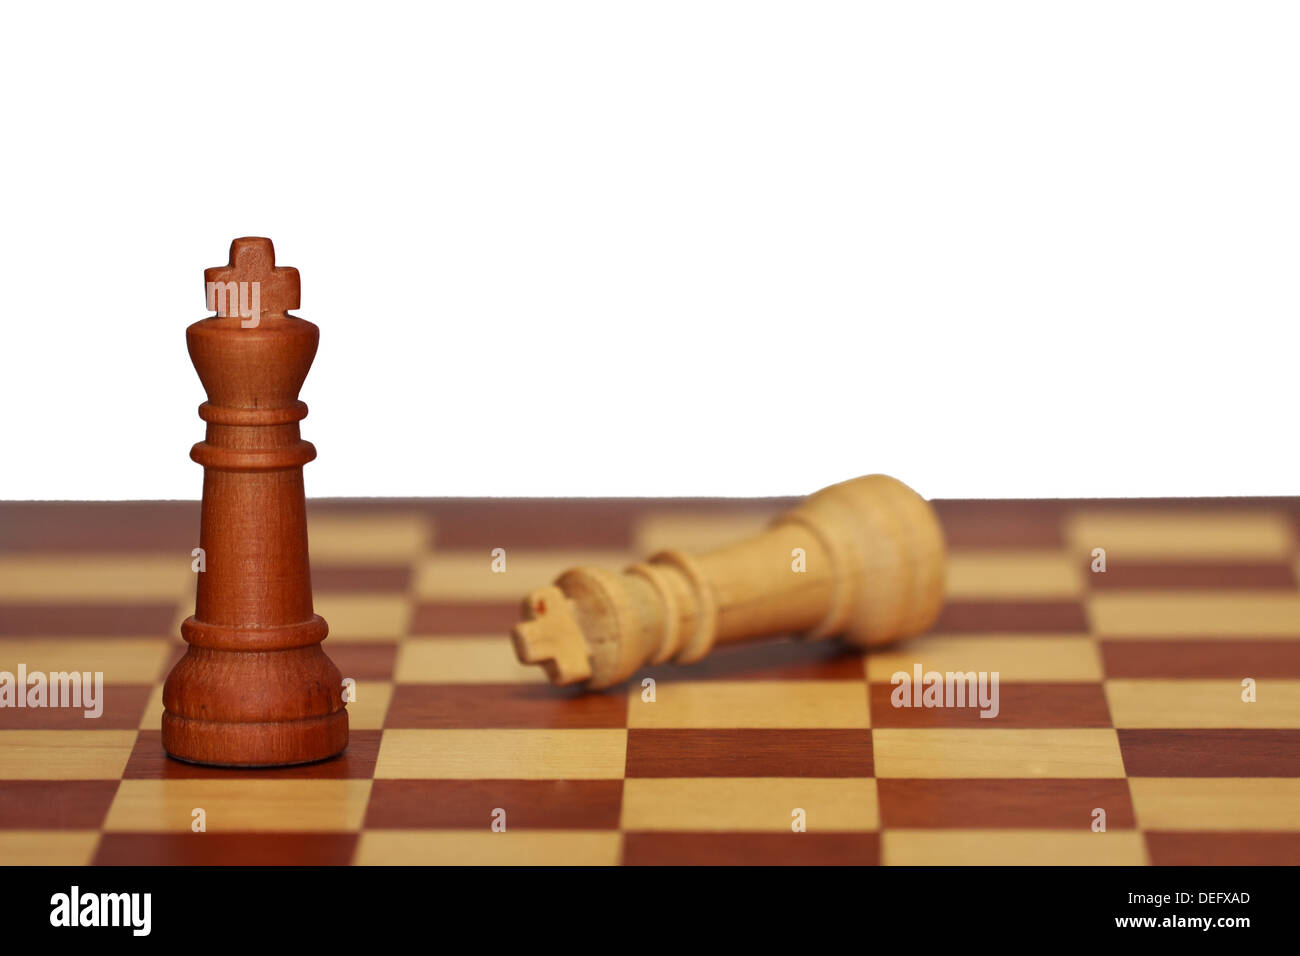 The final scene in a game of chess - Stock Image